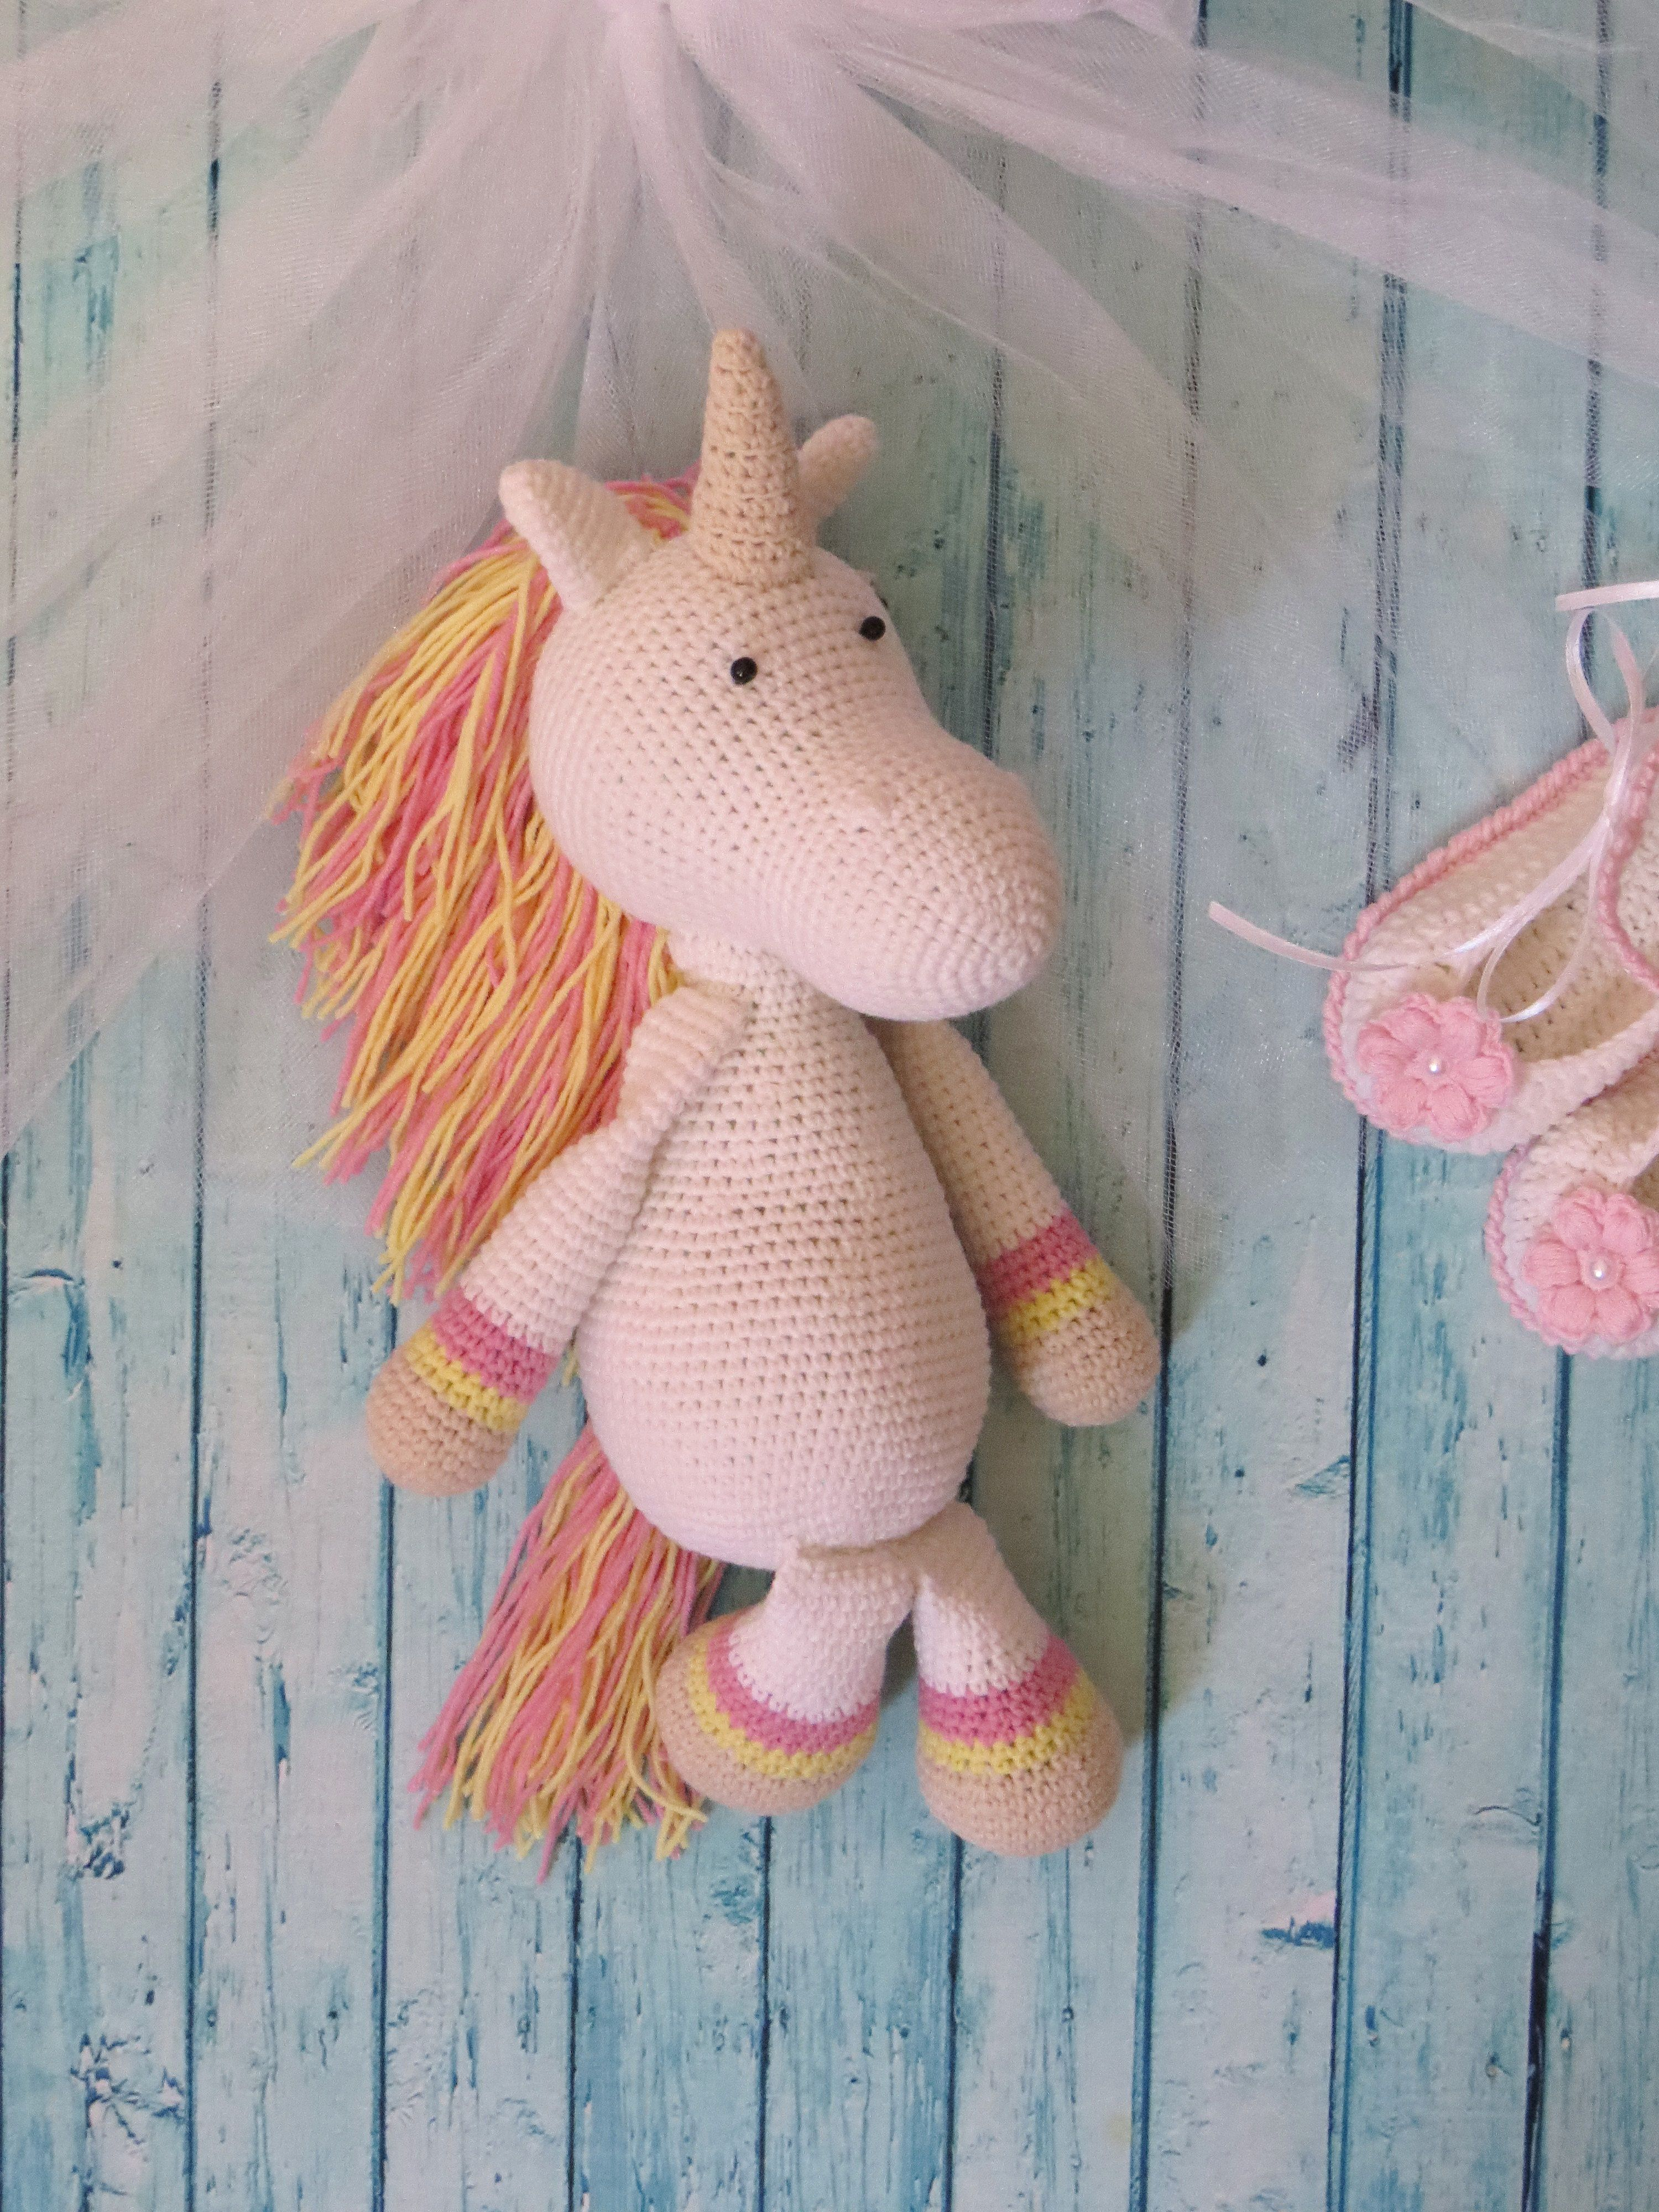 Unicorn toys images  Unicorn stuffed animal Stuffed unicorn Сrochet unicorn Unicorn